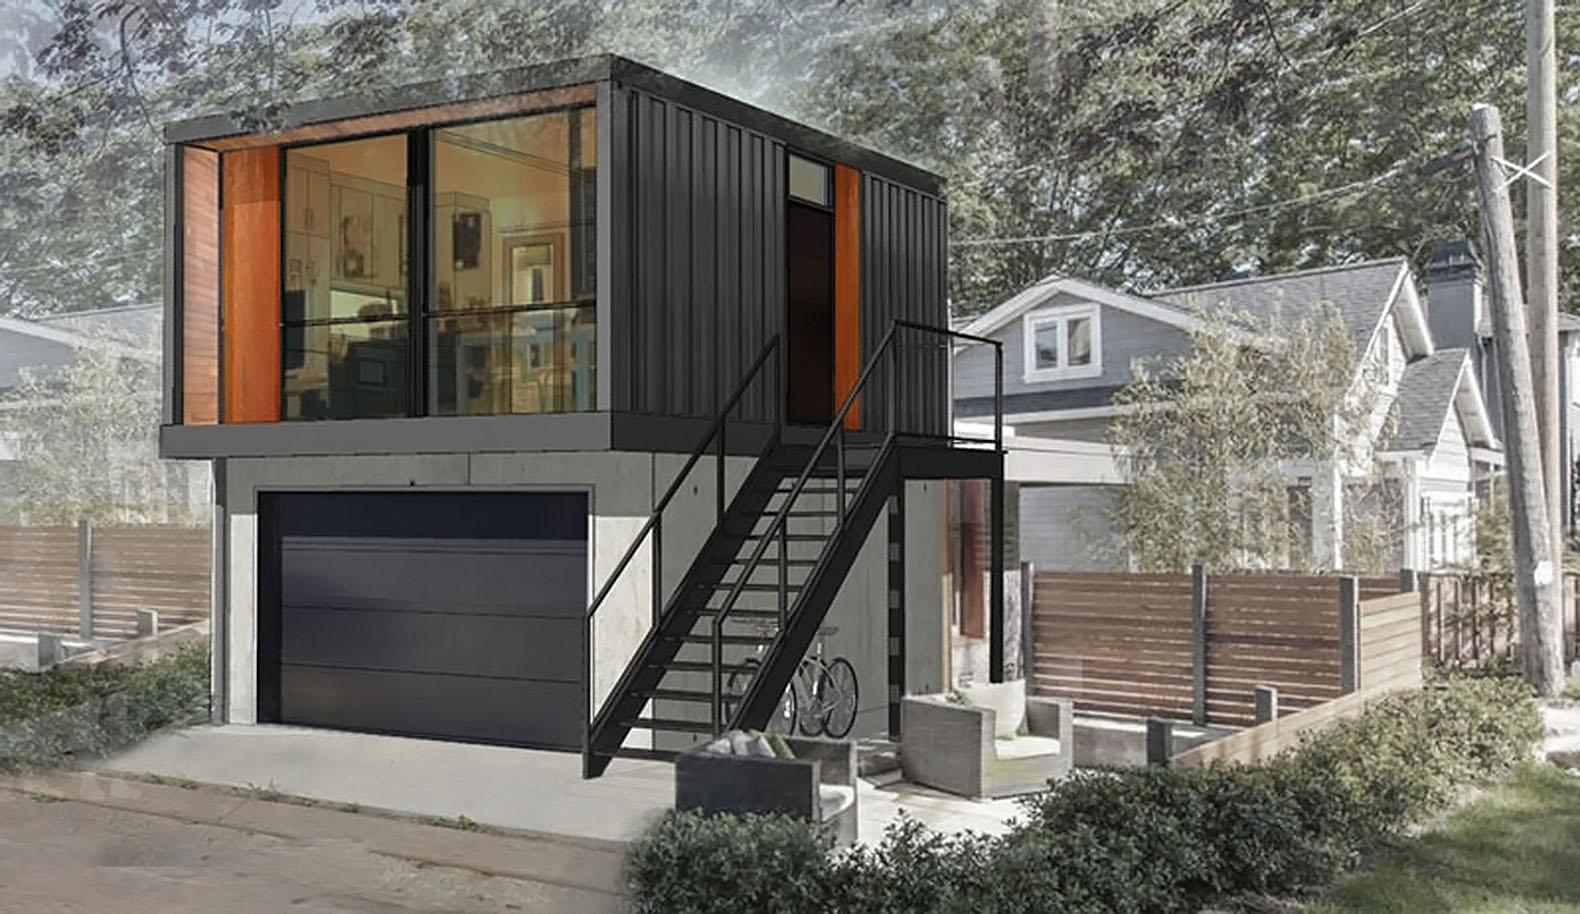 Use Unusual Small Prefab Homes Design from Used Container above Black Garage Door